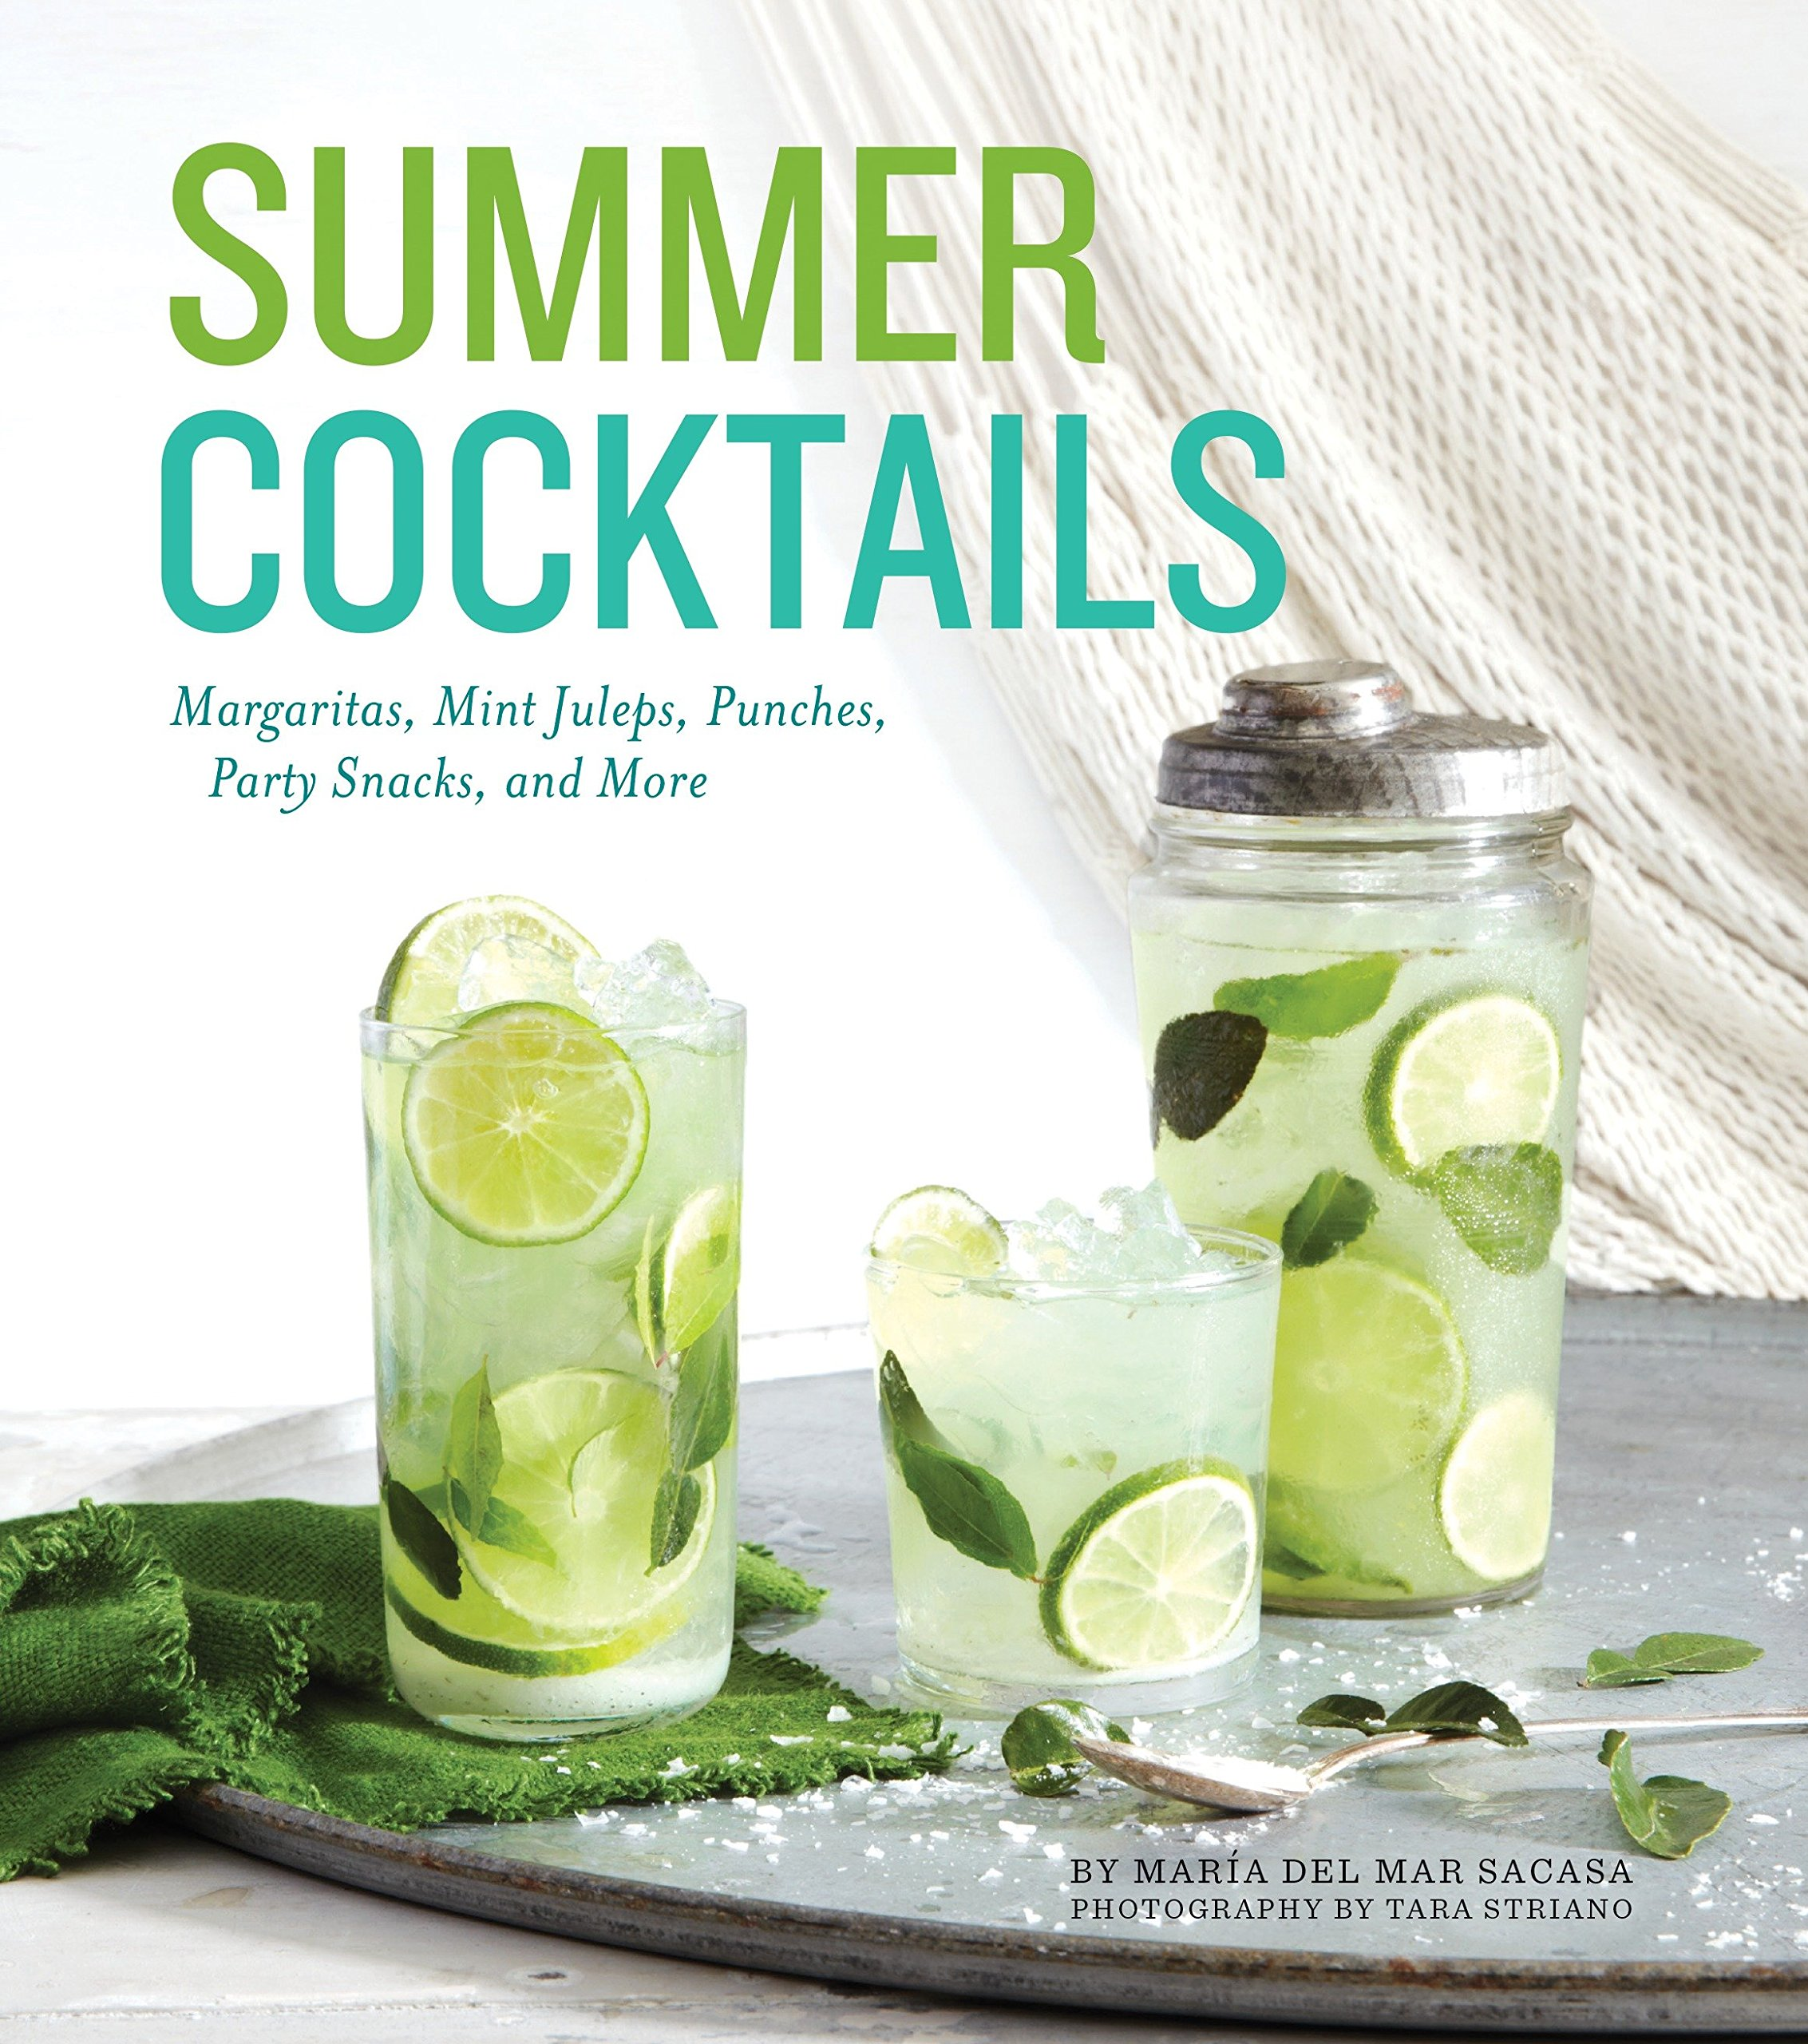 summer cocktails margaritas mint juleps punches party snacks